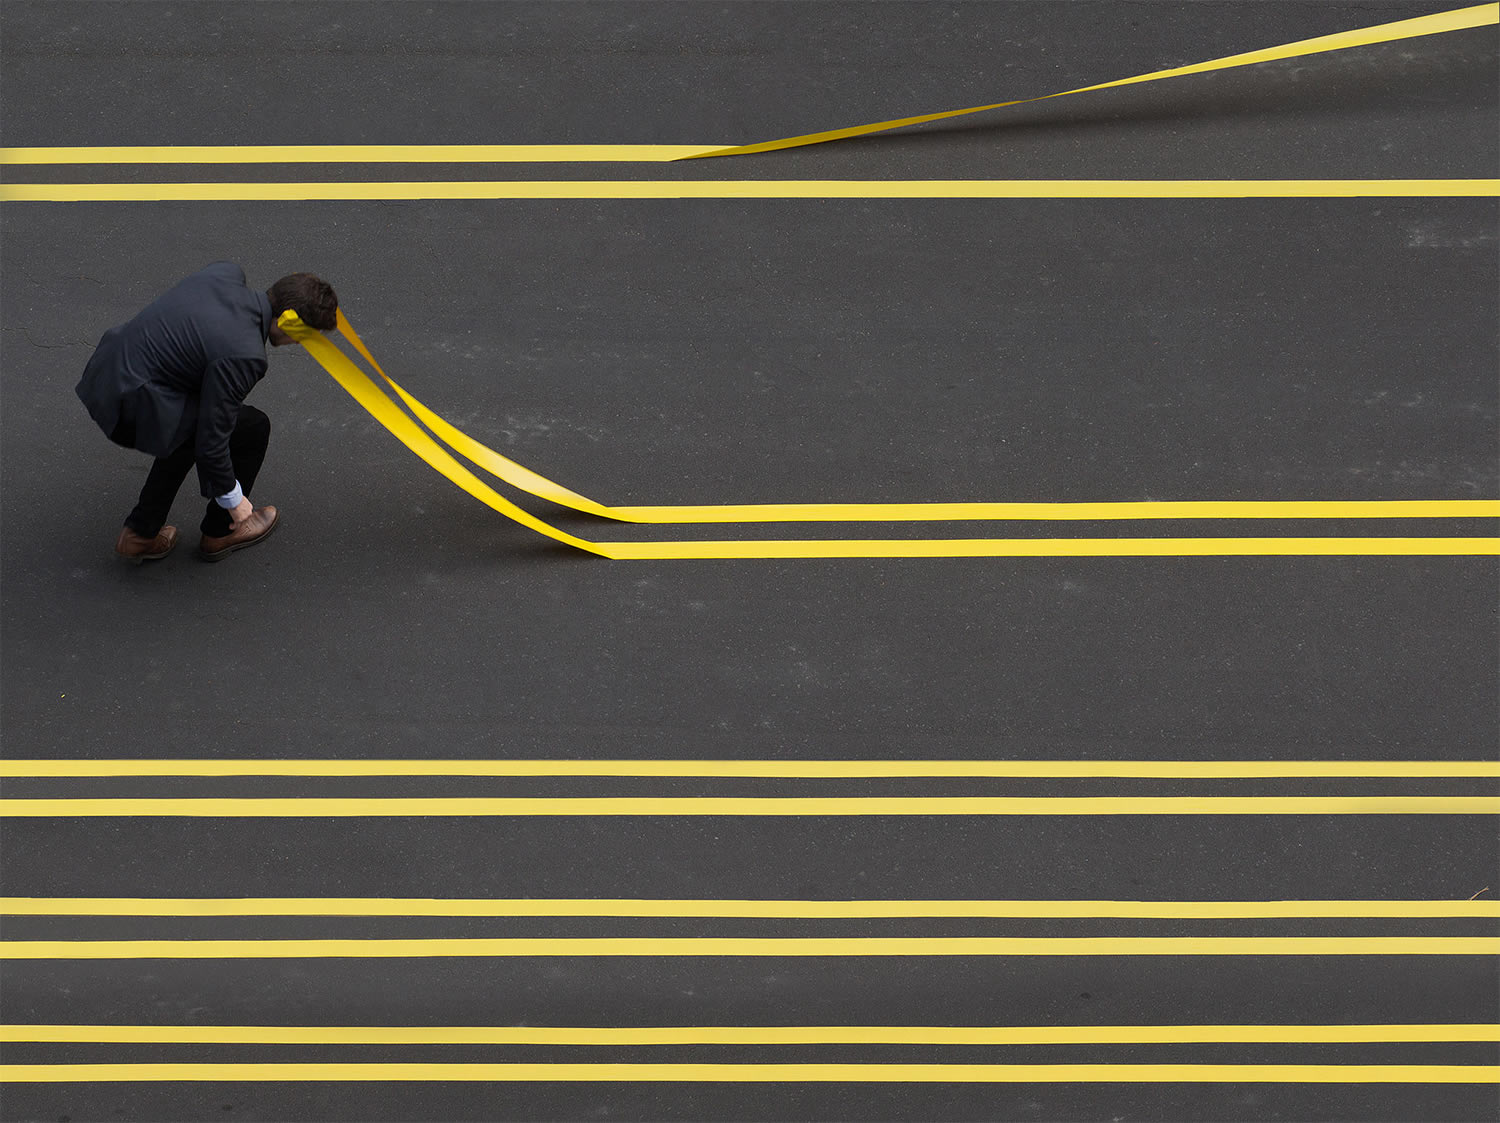 yellow tape strips on road, photography